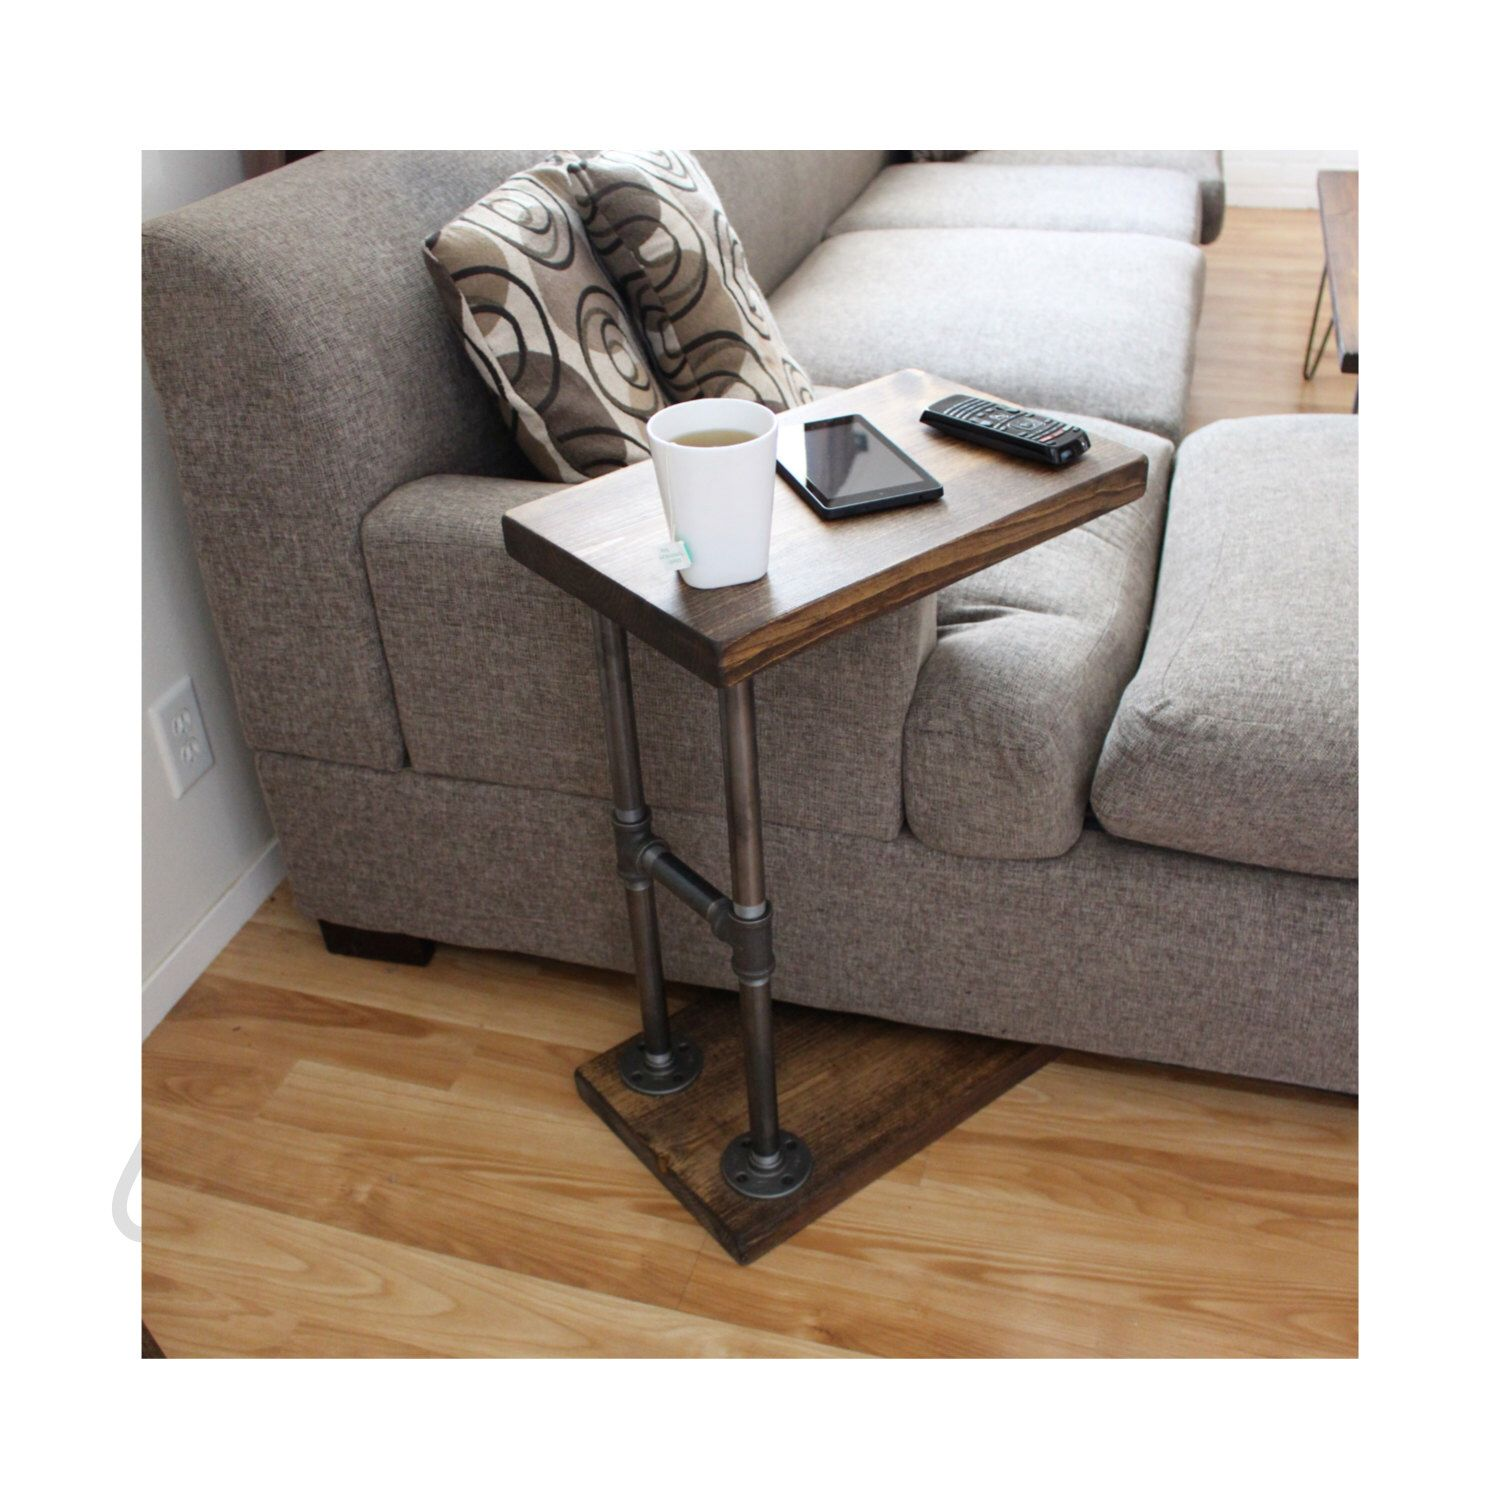 Industrial Furniture, Coffee Table, Side Table, Laptop Stand, End Table, Computer  Table   CTABLE